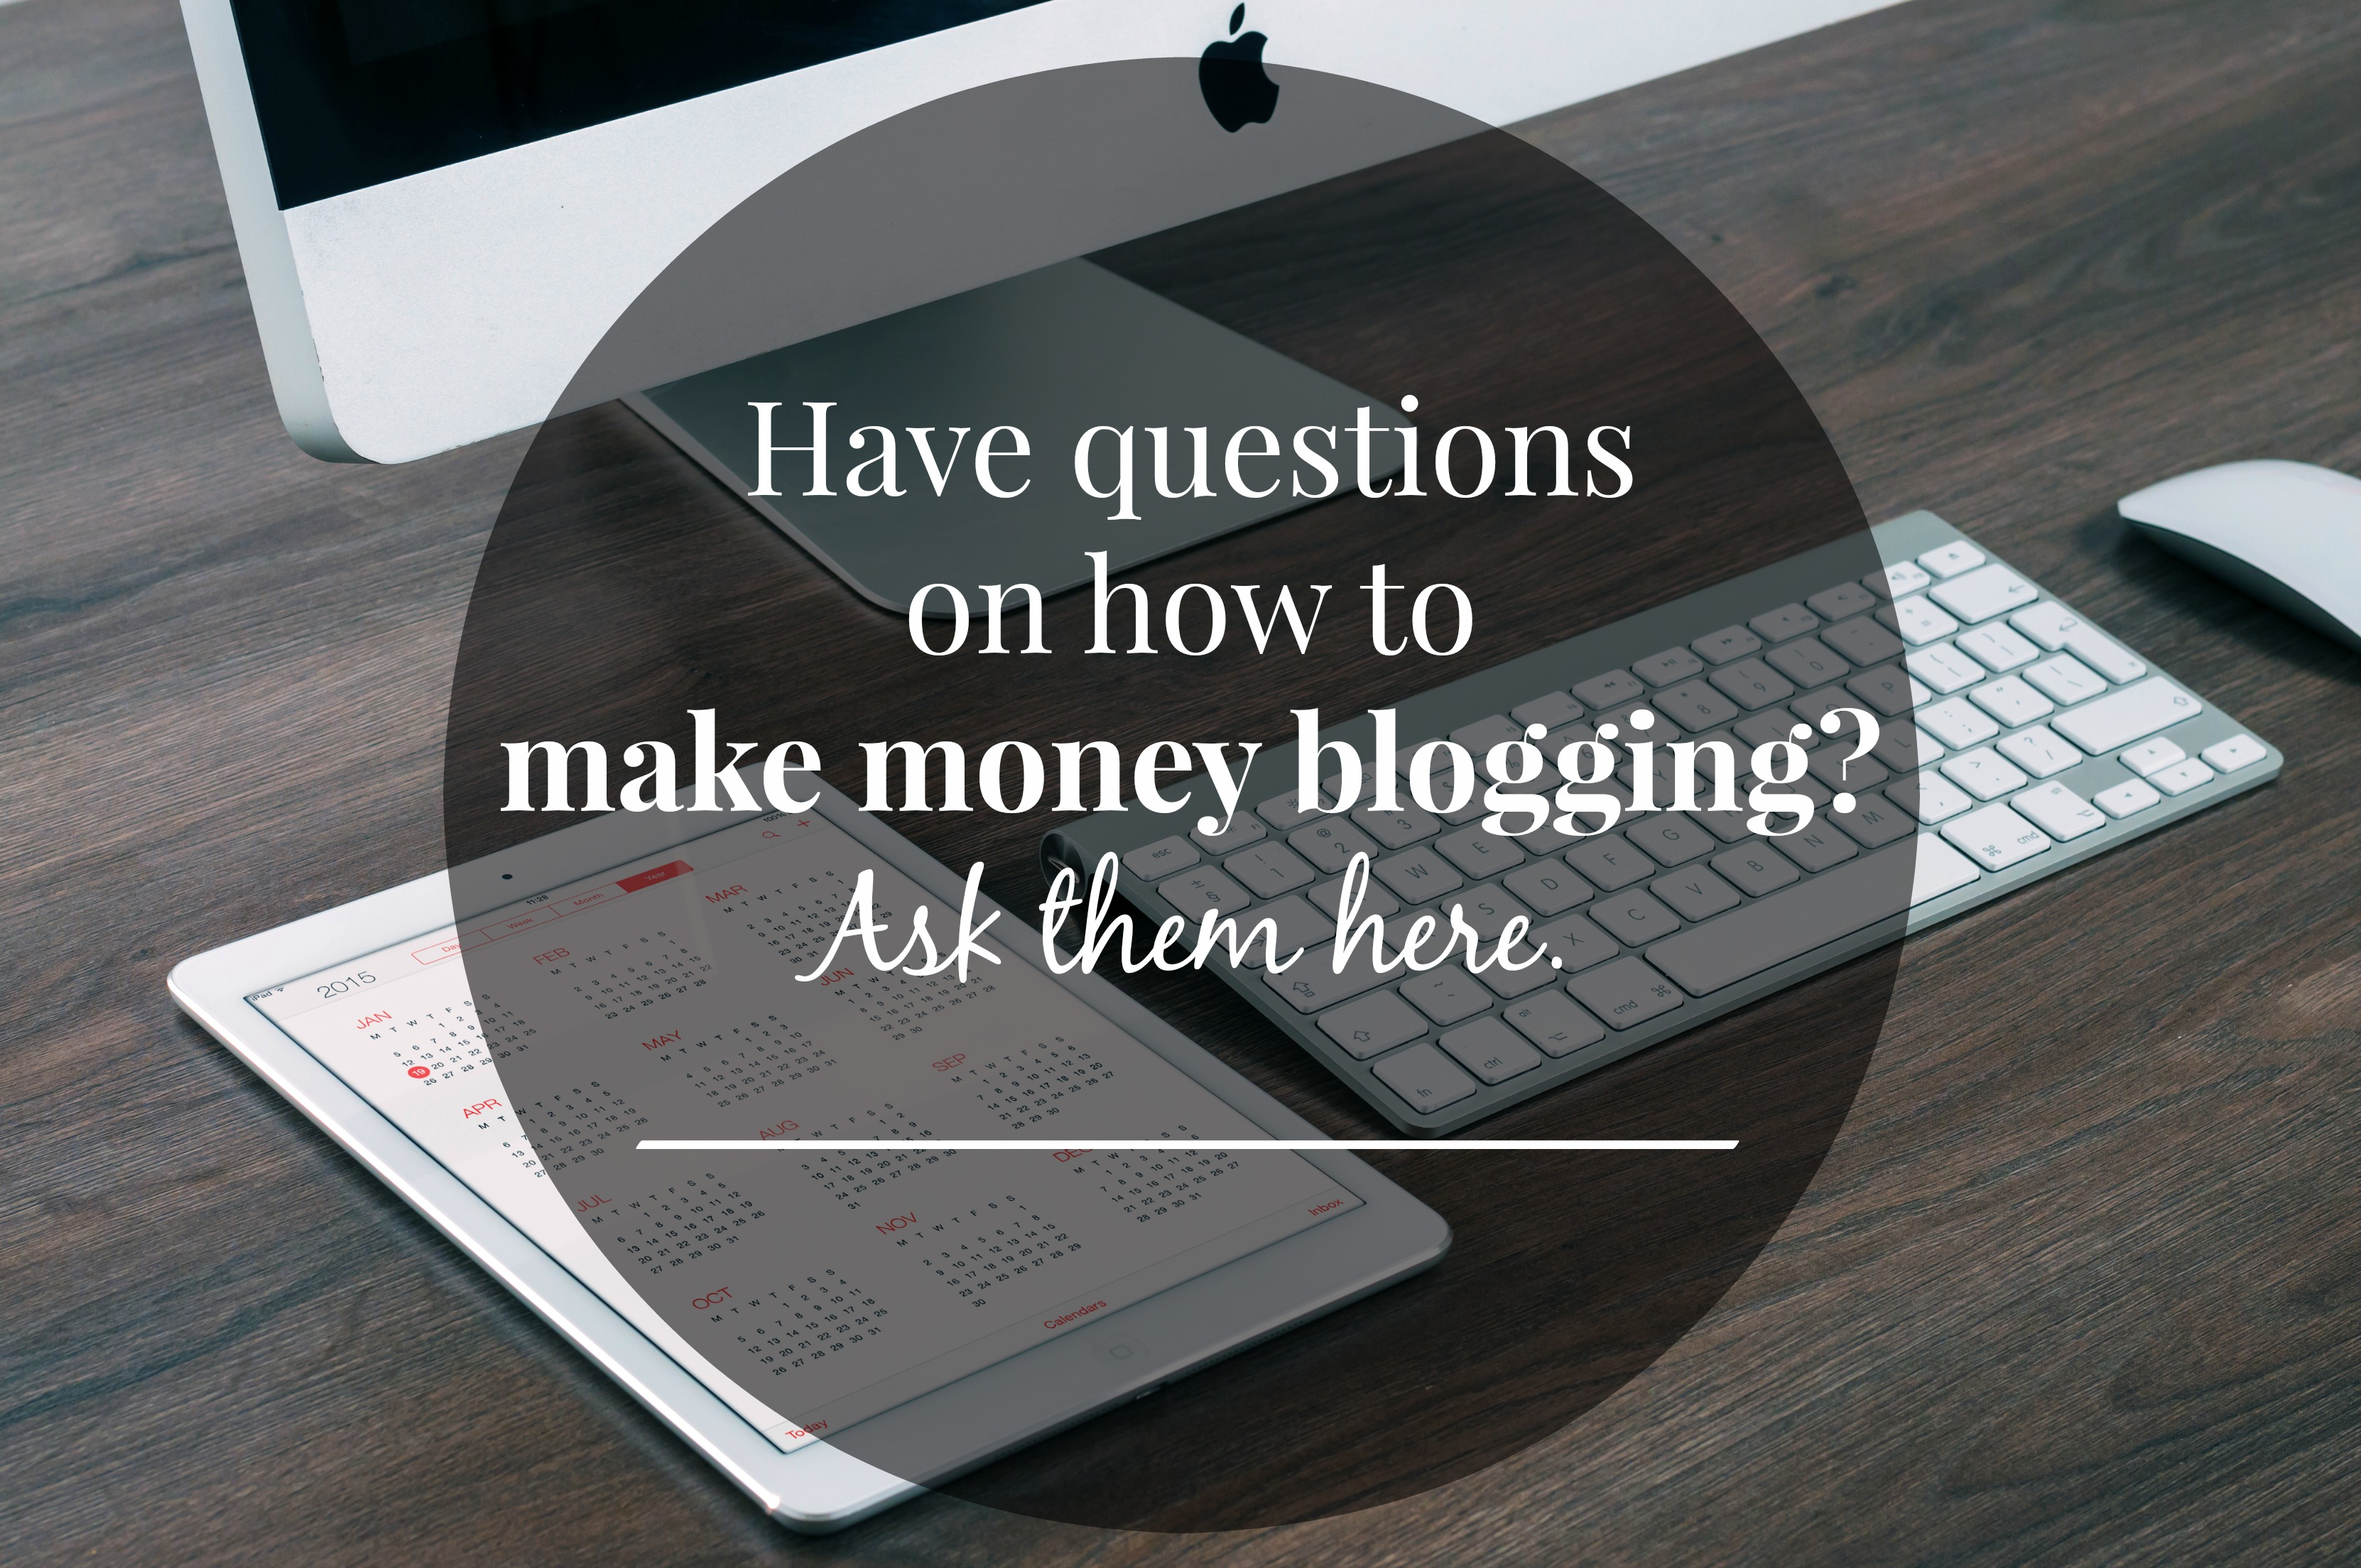 Have questions on how to make money blogging?